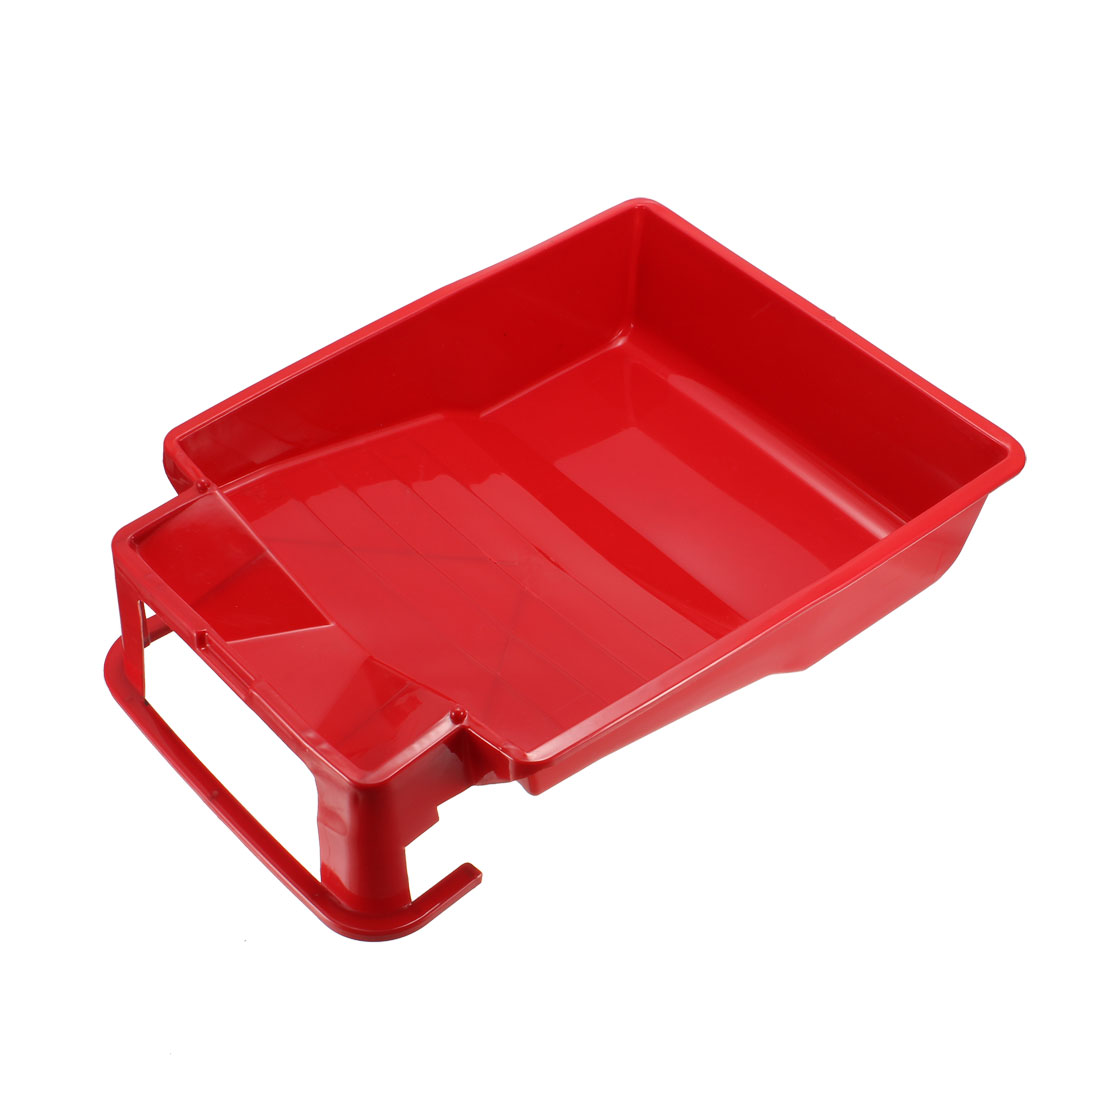 Paint Roller Tray for 9 Inch Plastic Liner for Painting Brush Red